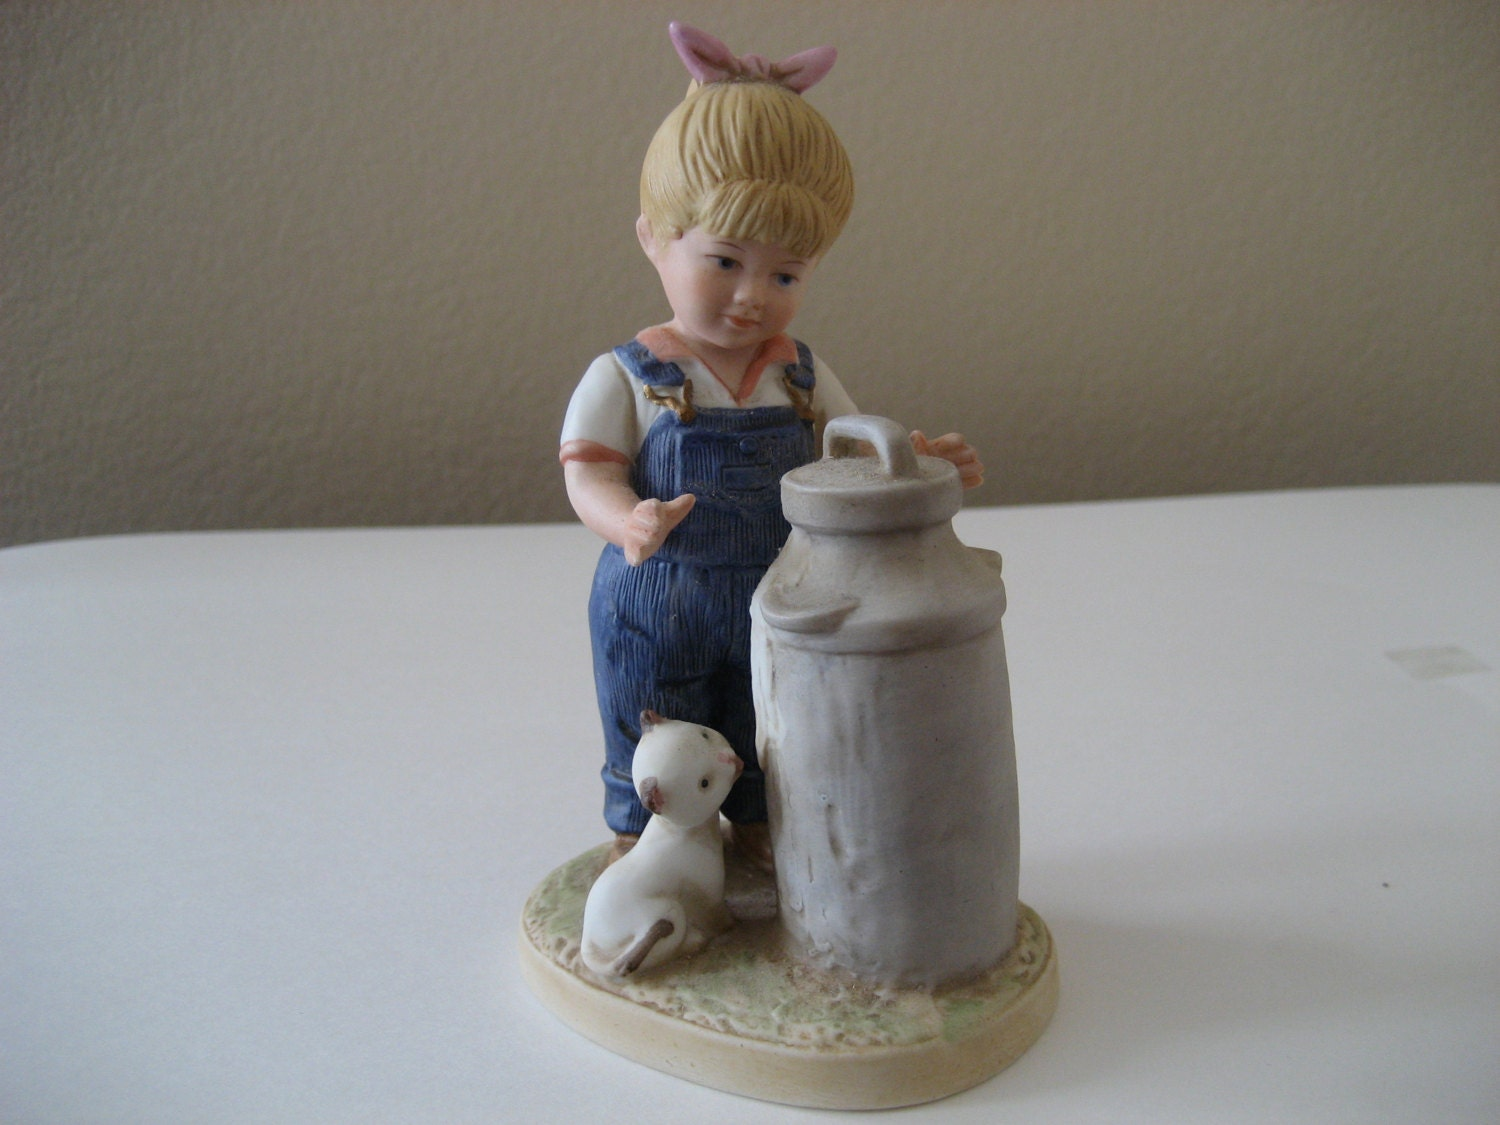 Vintage homco denim days girl figurine 1501 Home interiors denim das